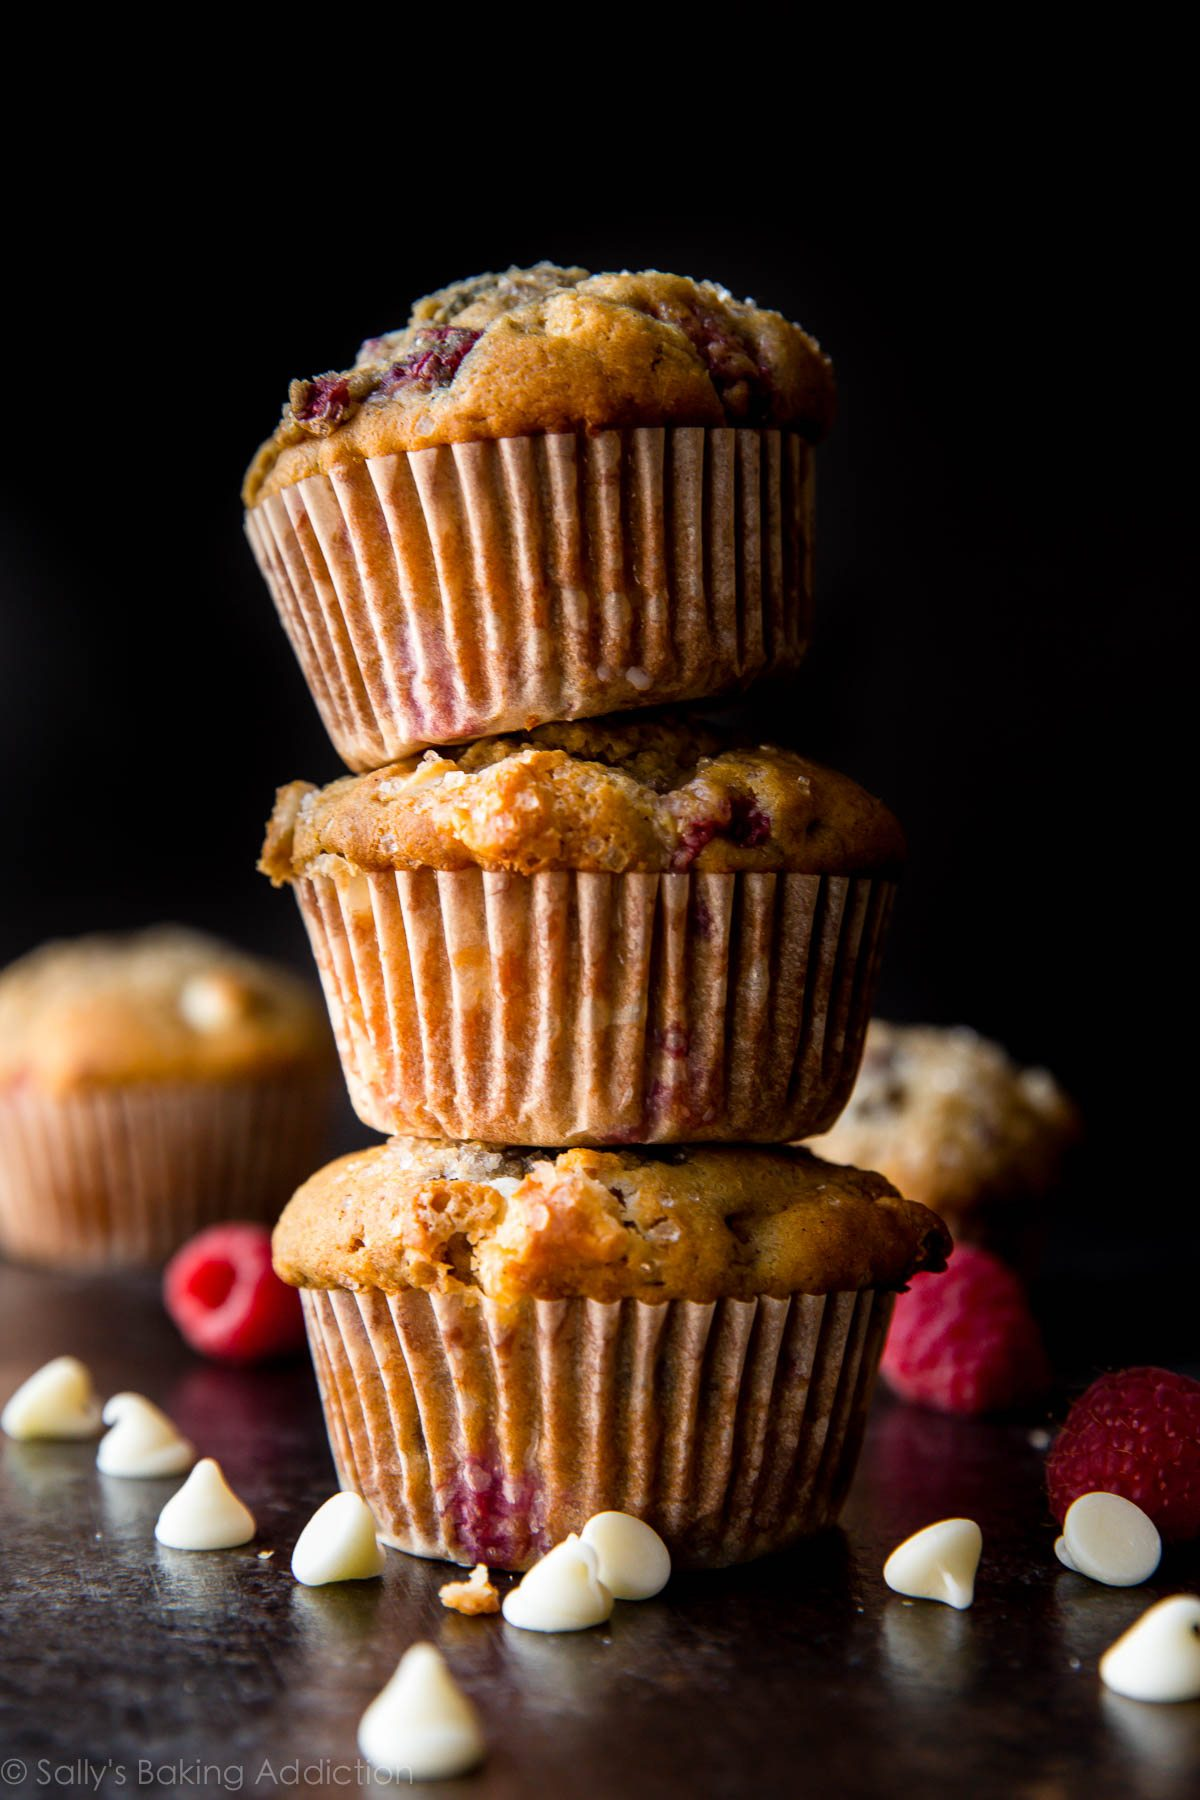 White chocolate raspberry muffins on sallysbakingaddiction.com